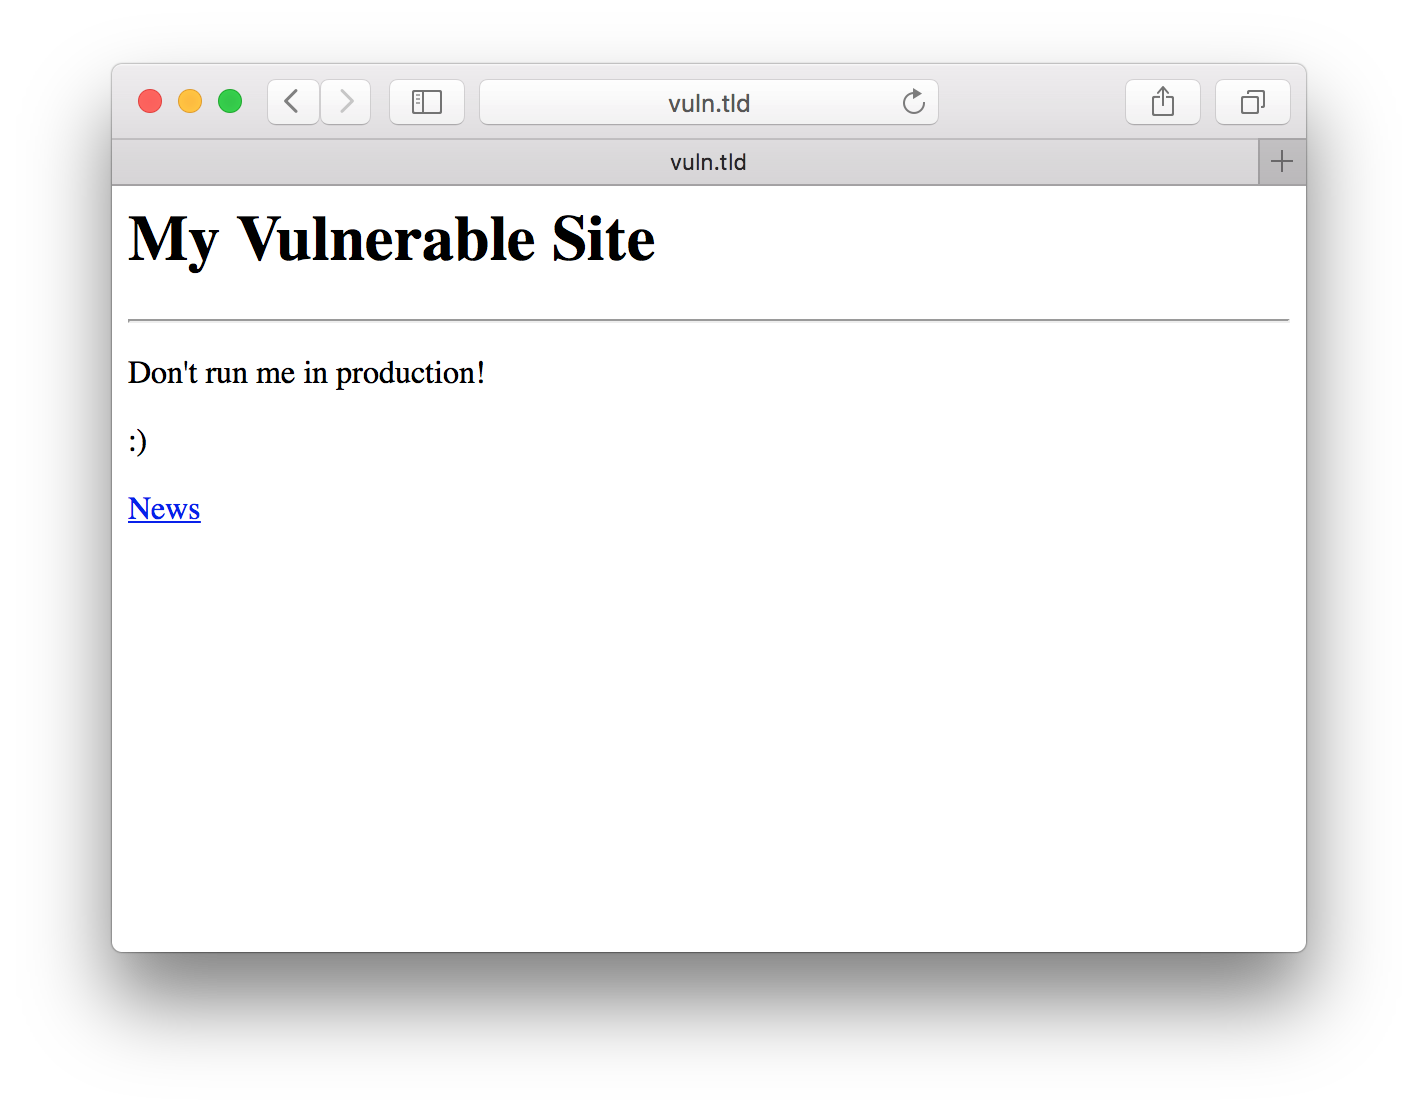 vulnerable site